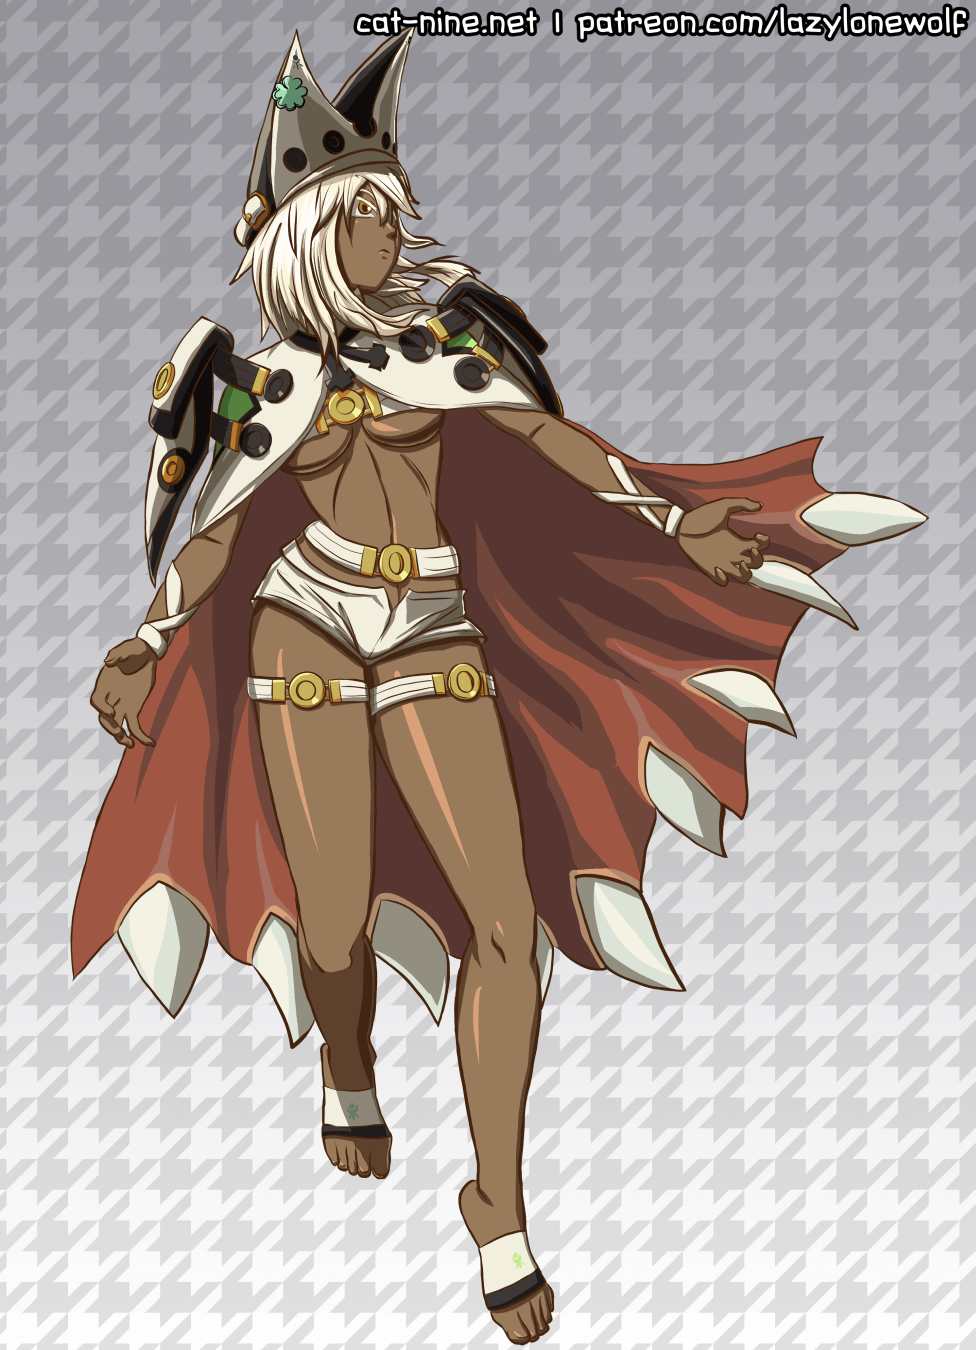 Colored fan artwork of Ramlethal Valentine from GUILTY GEAR Xrd -REVELATOR-